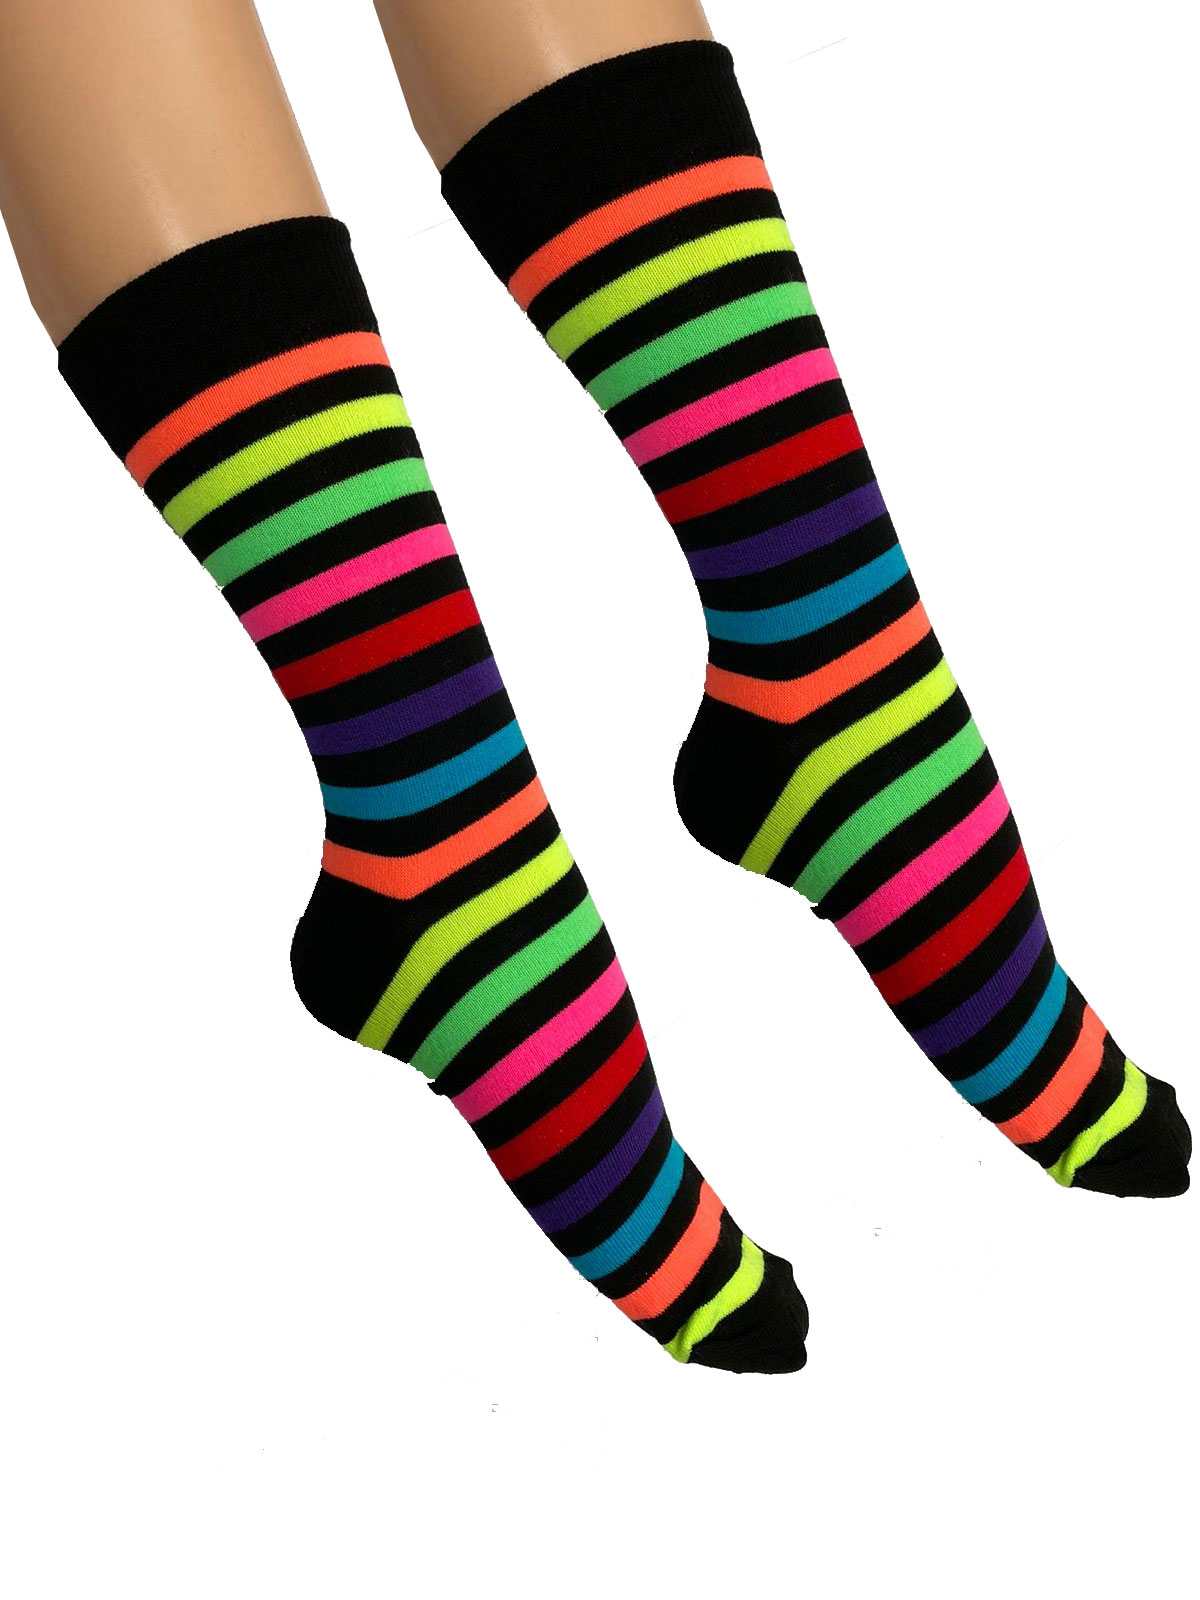 Mens Black and Rainbow Ankle High Socks(12 Pairs)